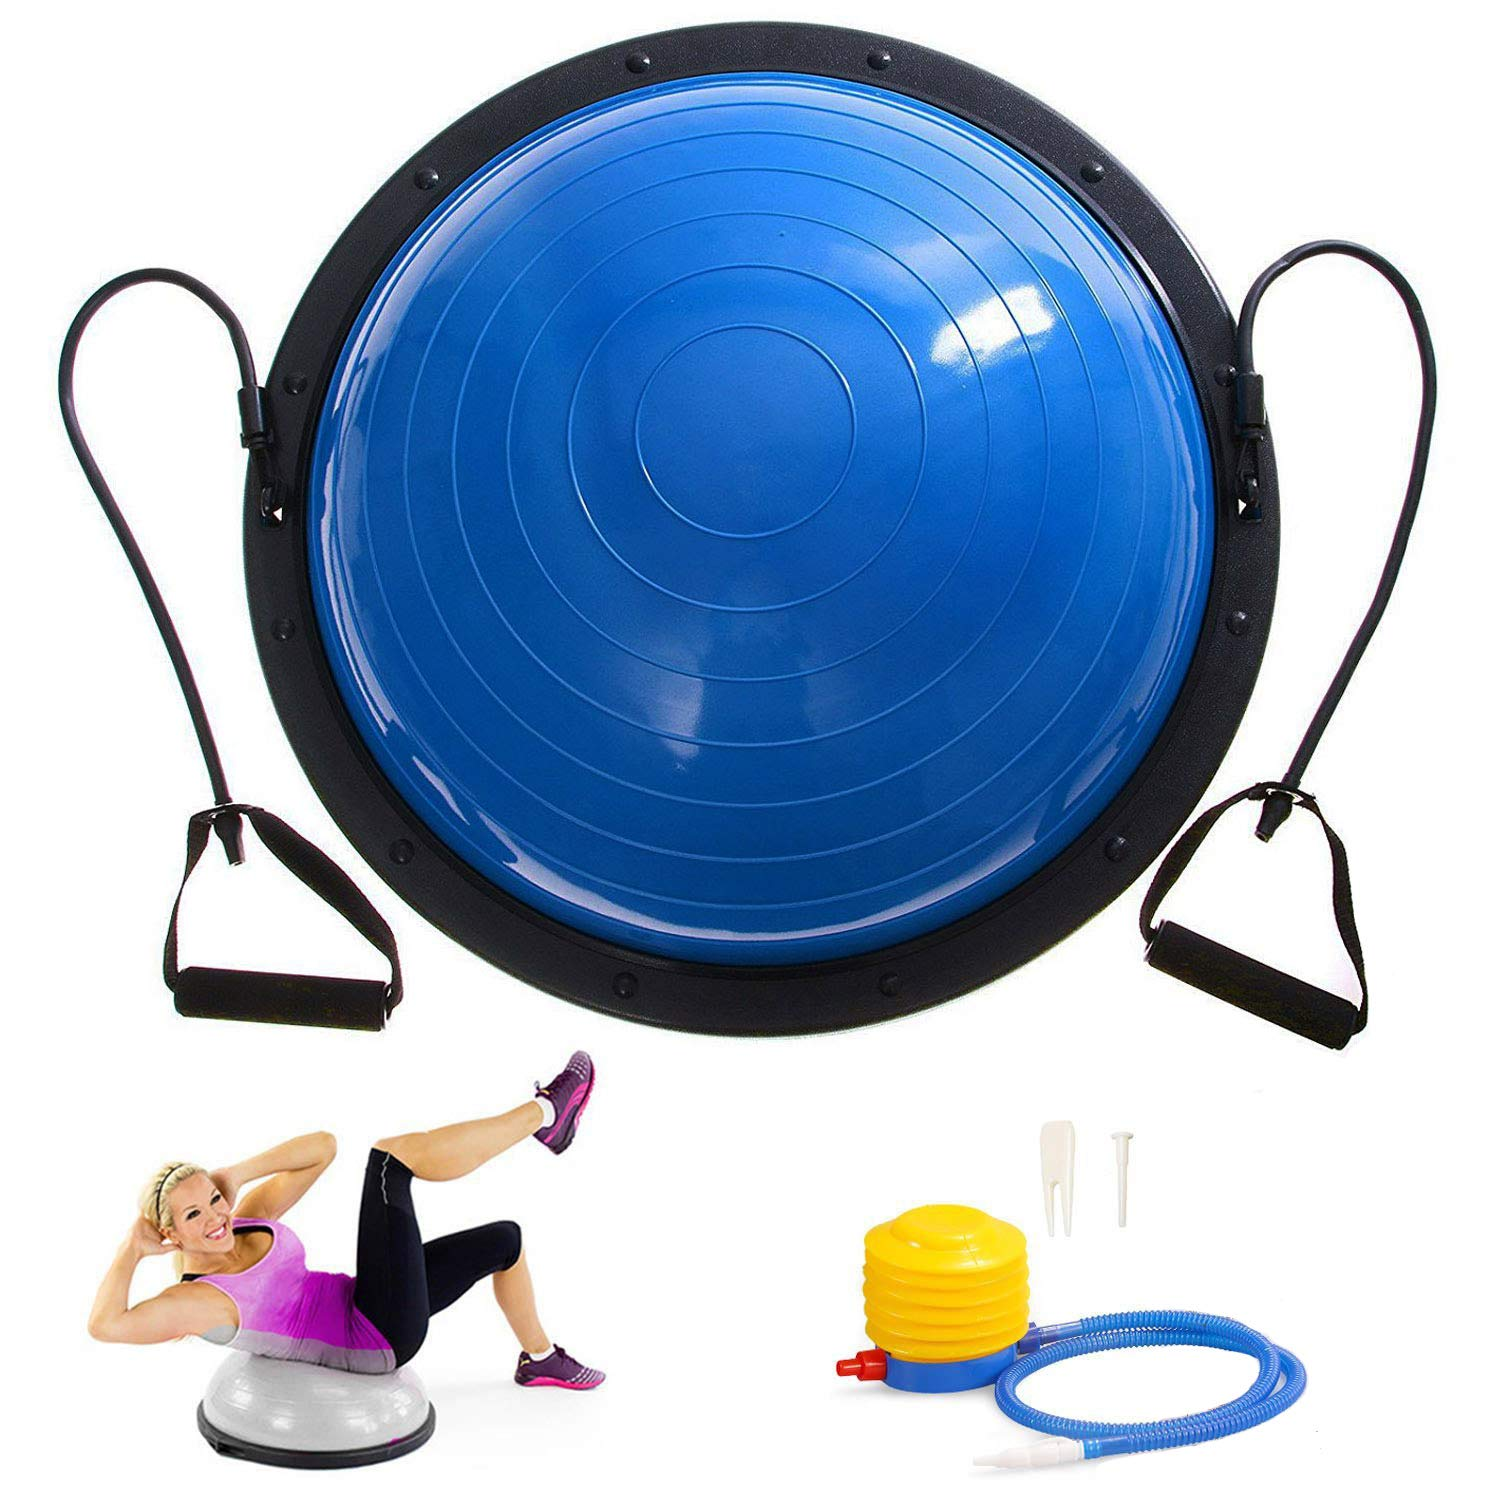 SHZOND 23'' Yoga Balance Ball Yoga Fitness Strength Exercise Workout Sport Balance Trainer